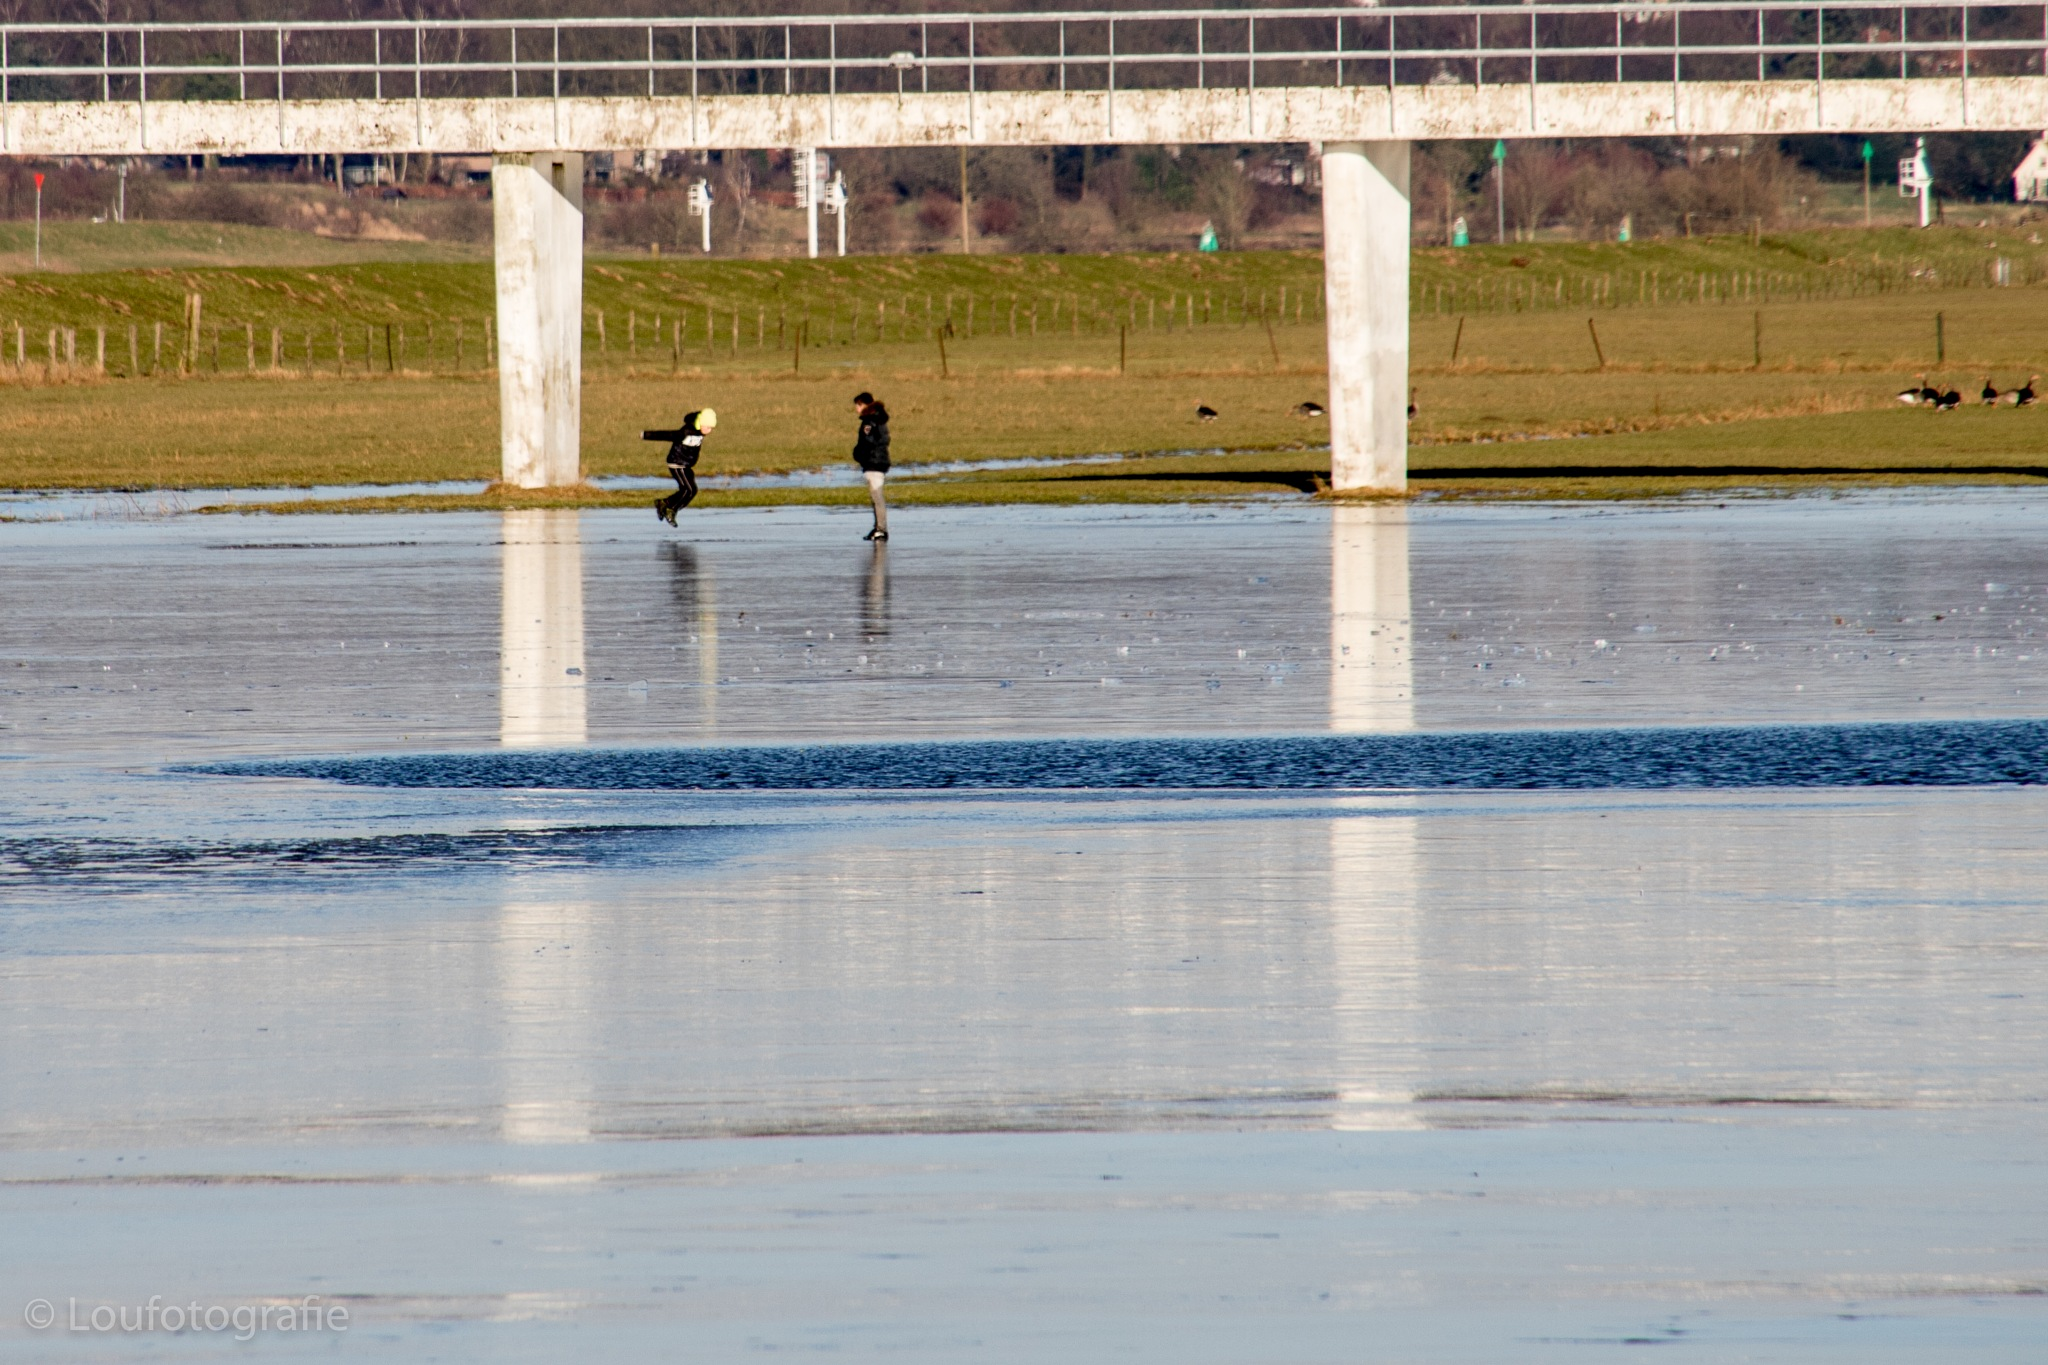 Jumping on the ice - Yssel Nederland  by Loufotografie